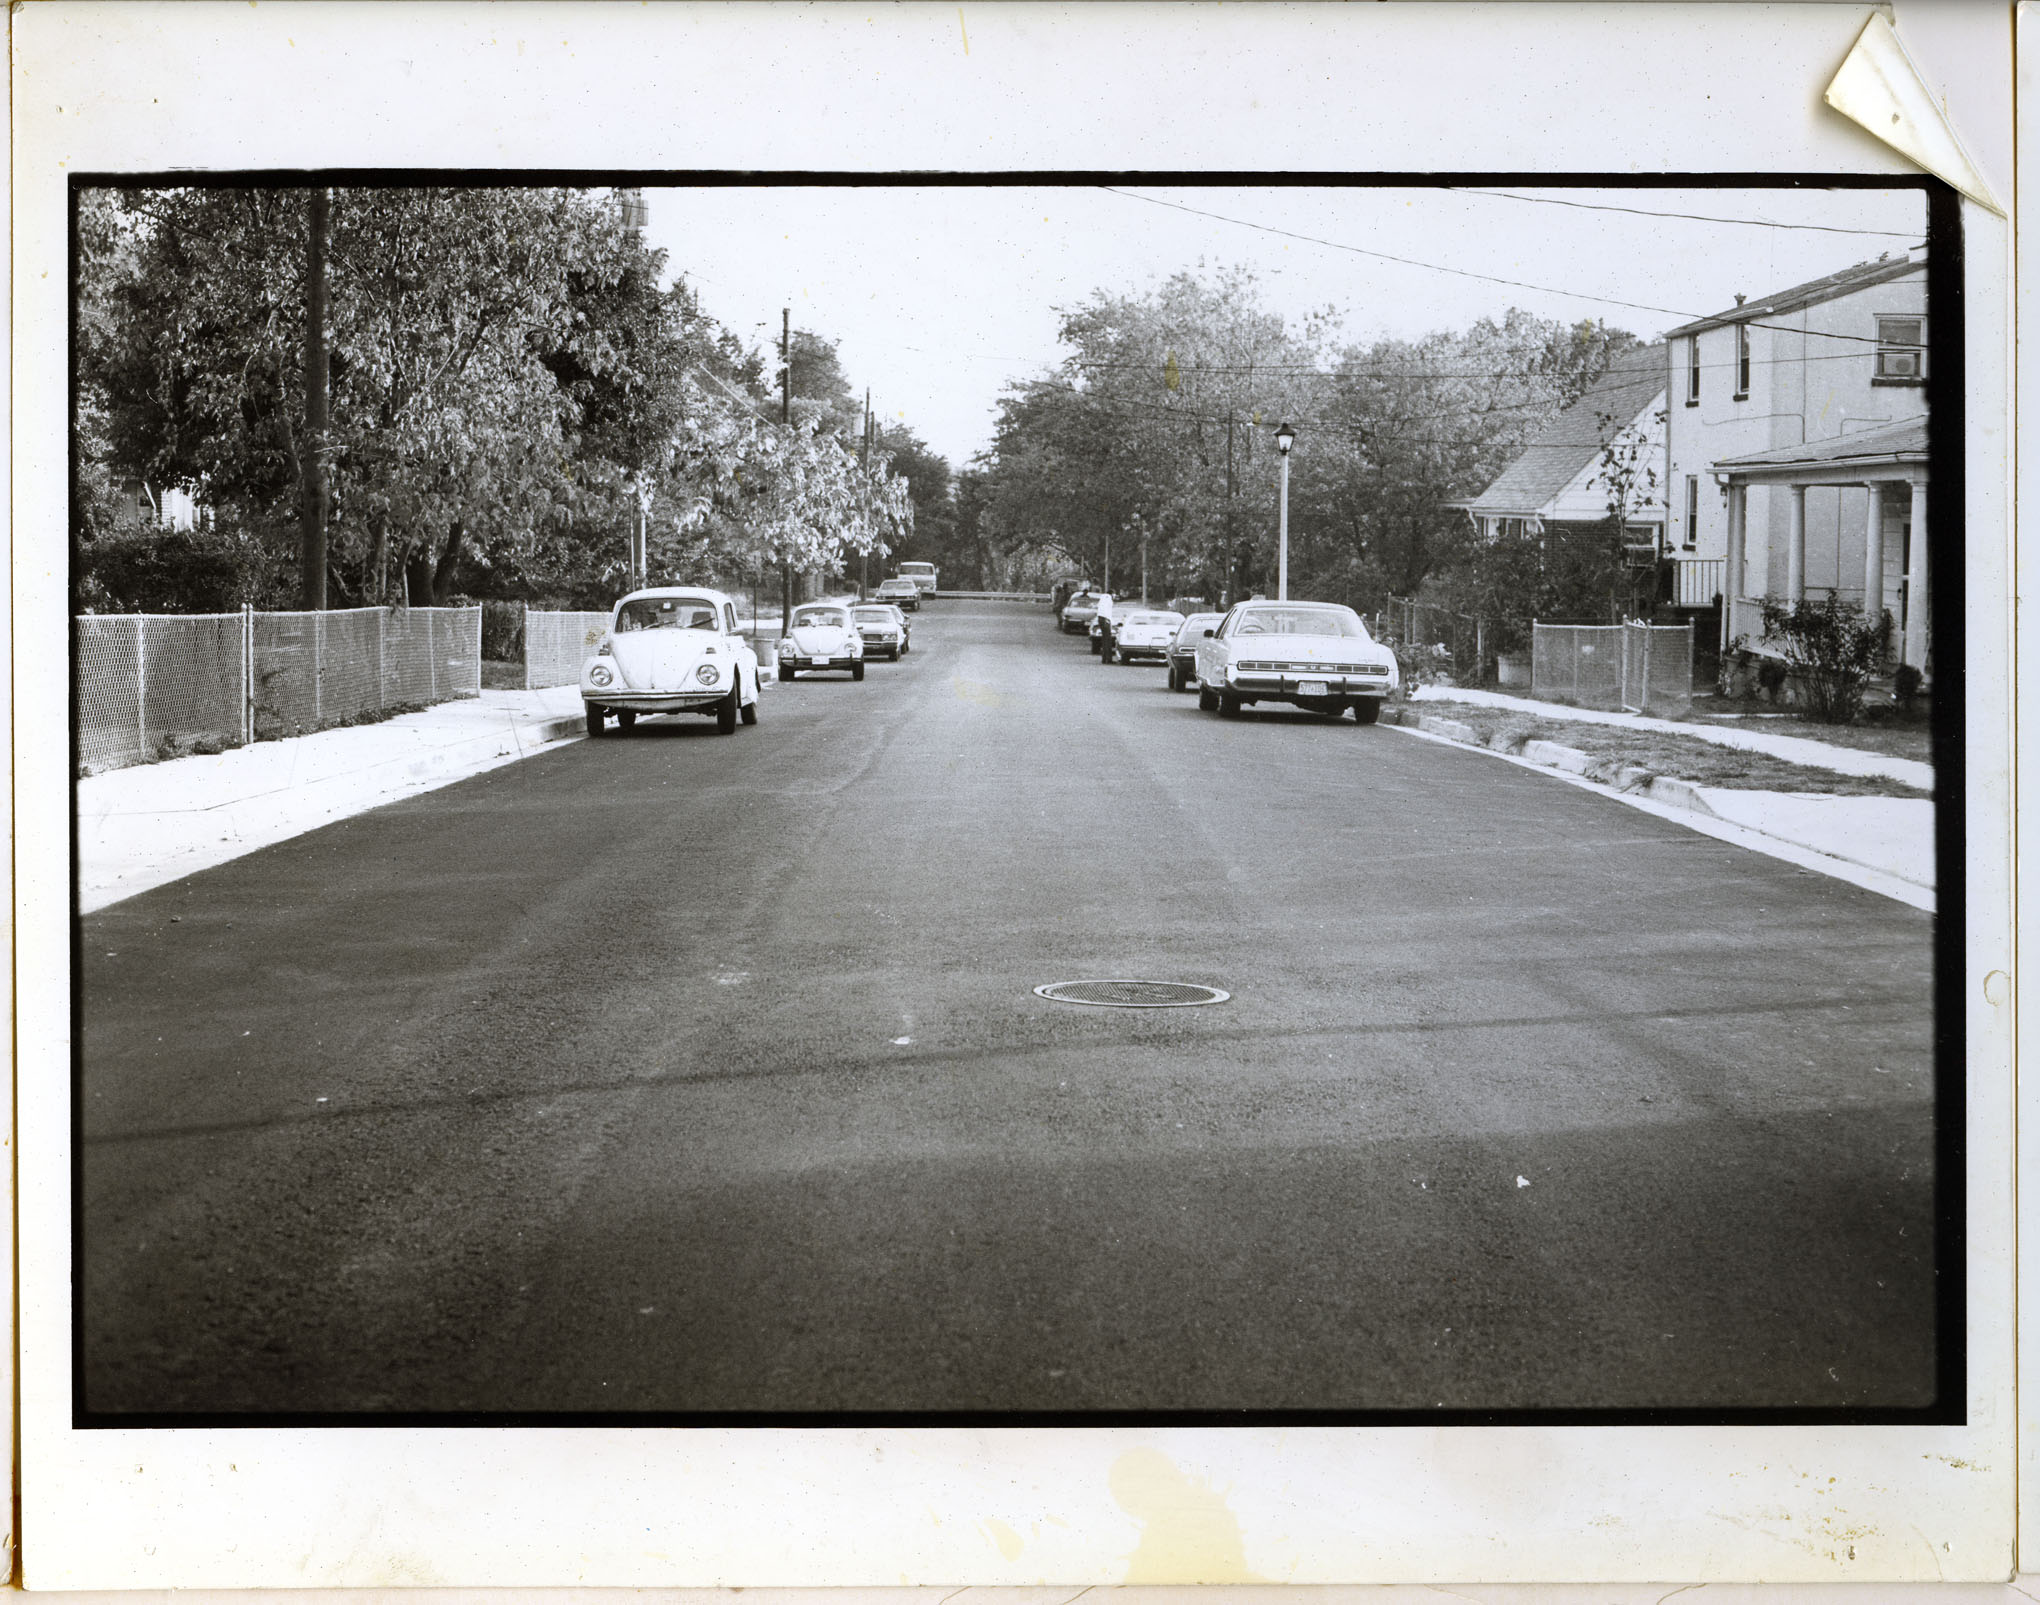 Street scene. Cars line the road. Some houses visible, as well as trees and chain link fences. arlin